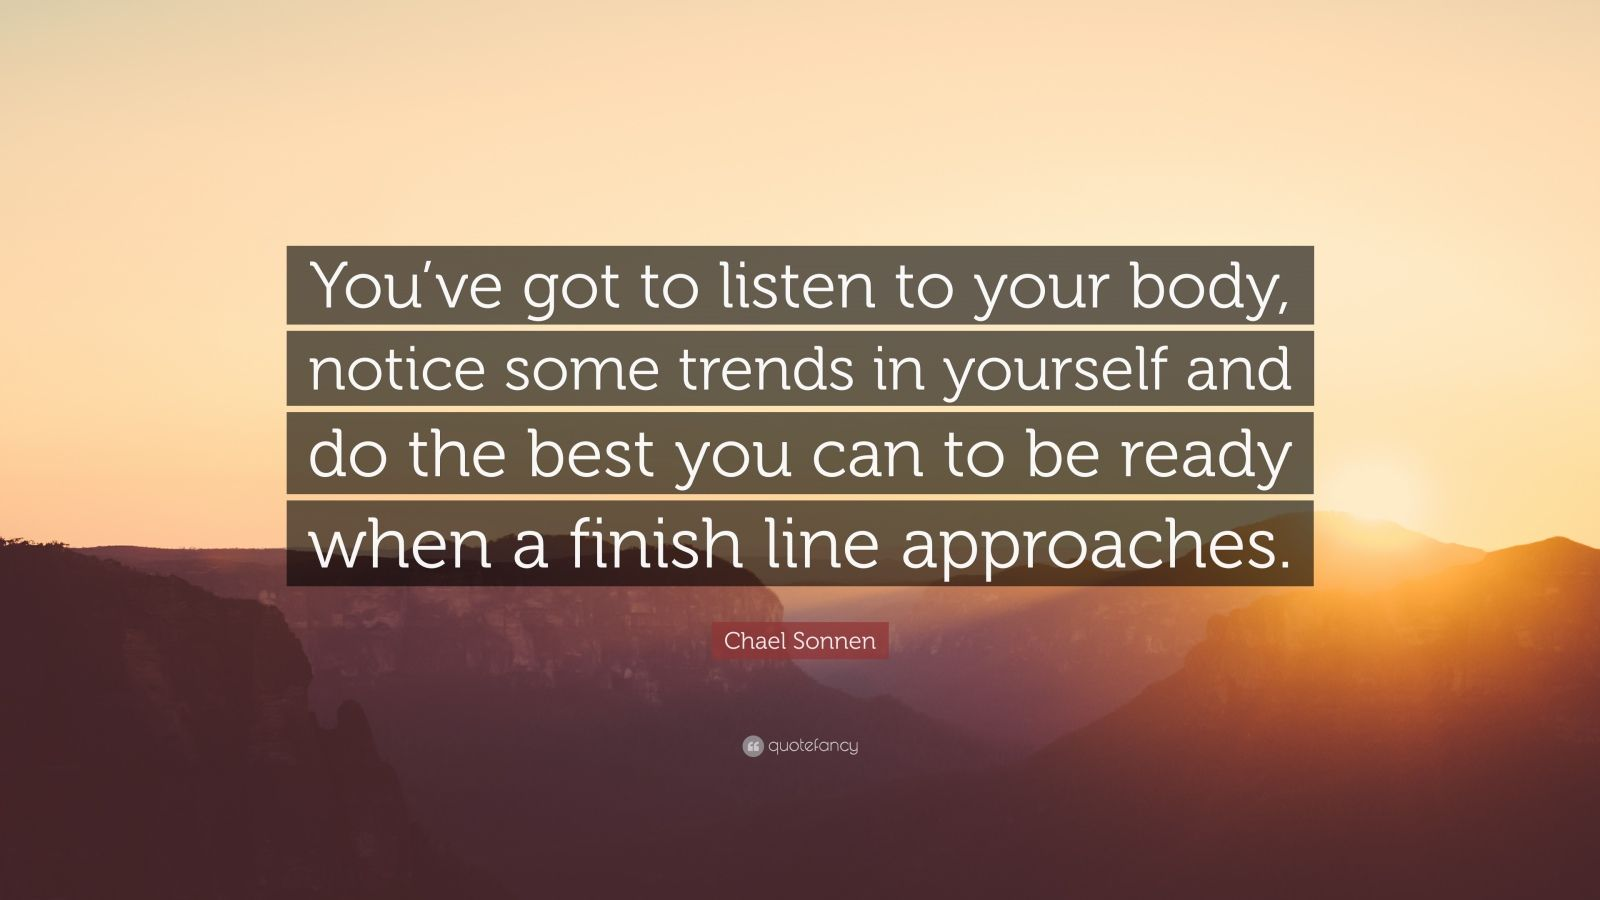 """Chael Sonnen Quote: """"You've got to listen to your body, notice some trends in yourself and do the best you can to be ready when a finish line approaches."""""""